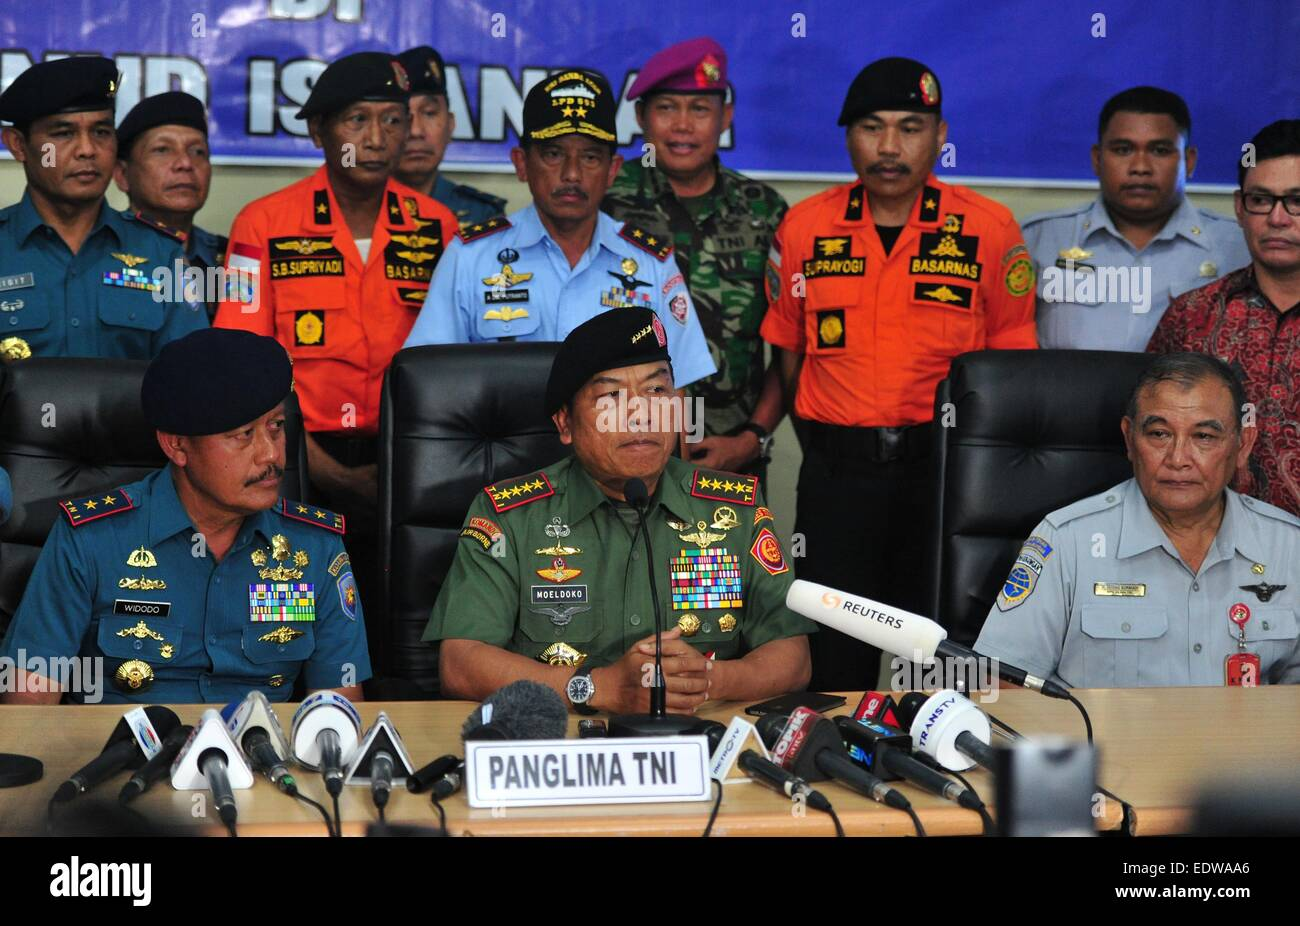 Pangkalan Bun Indonesia  City new picture : Pangkalan Bun, Indonesia. 10th Jan, 2015. Indonesian Armed Forces ...